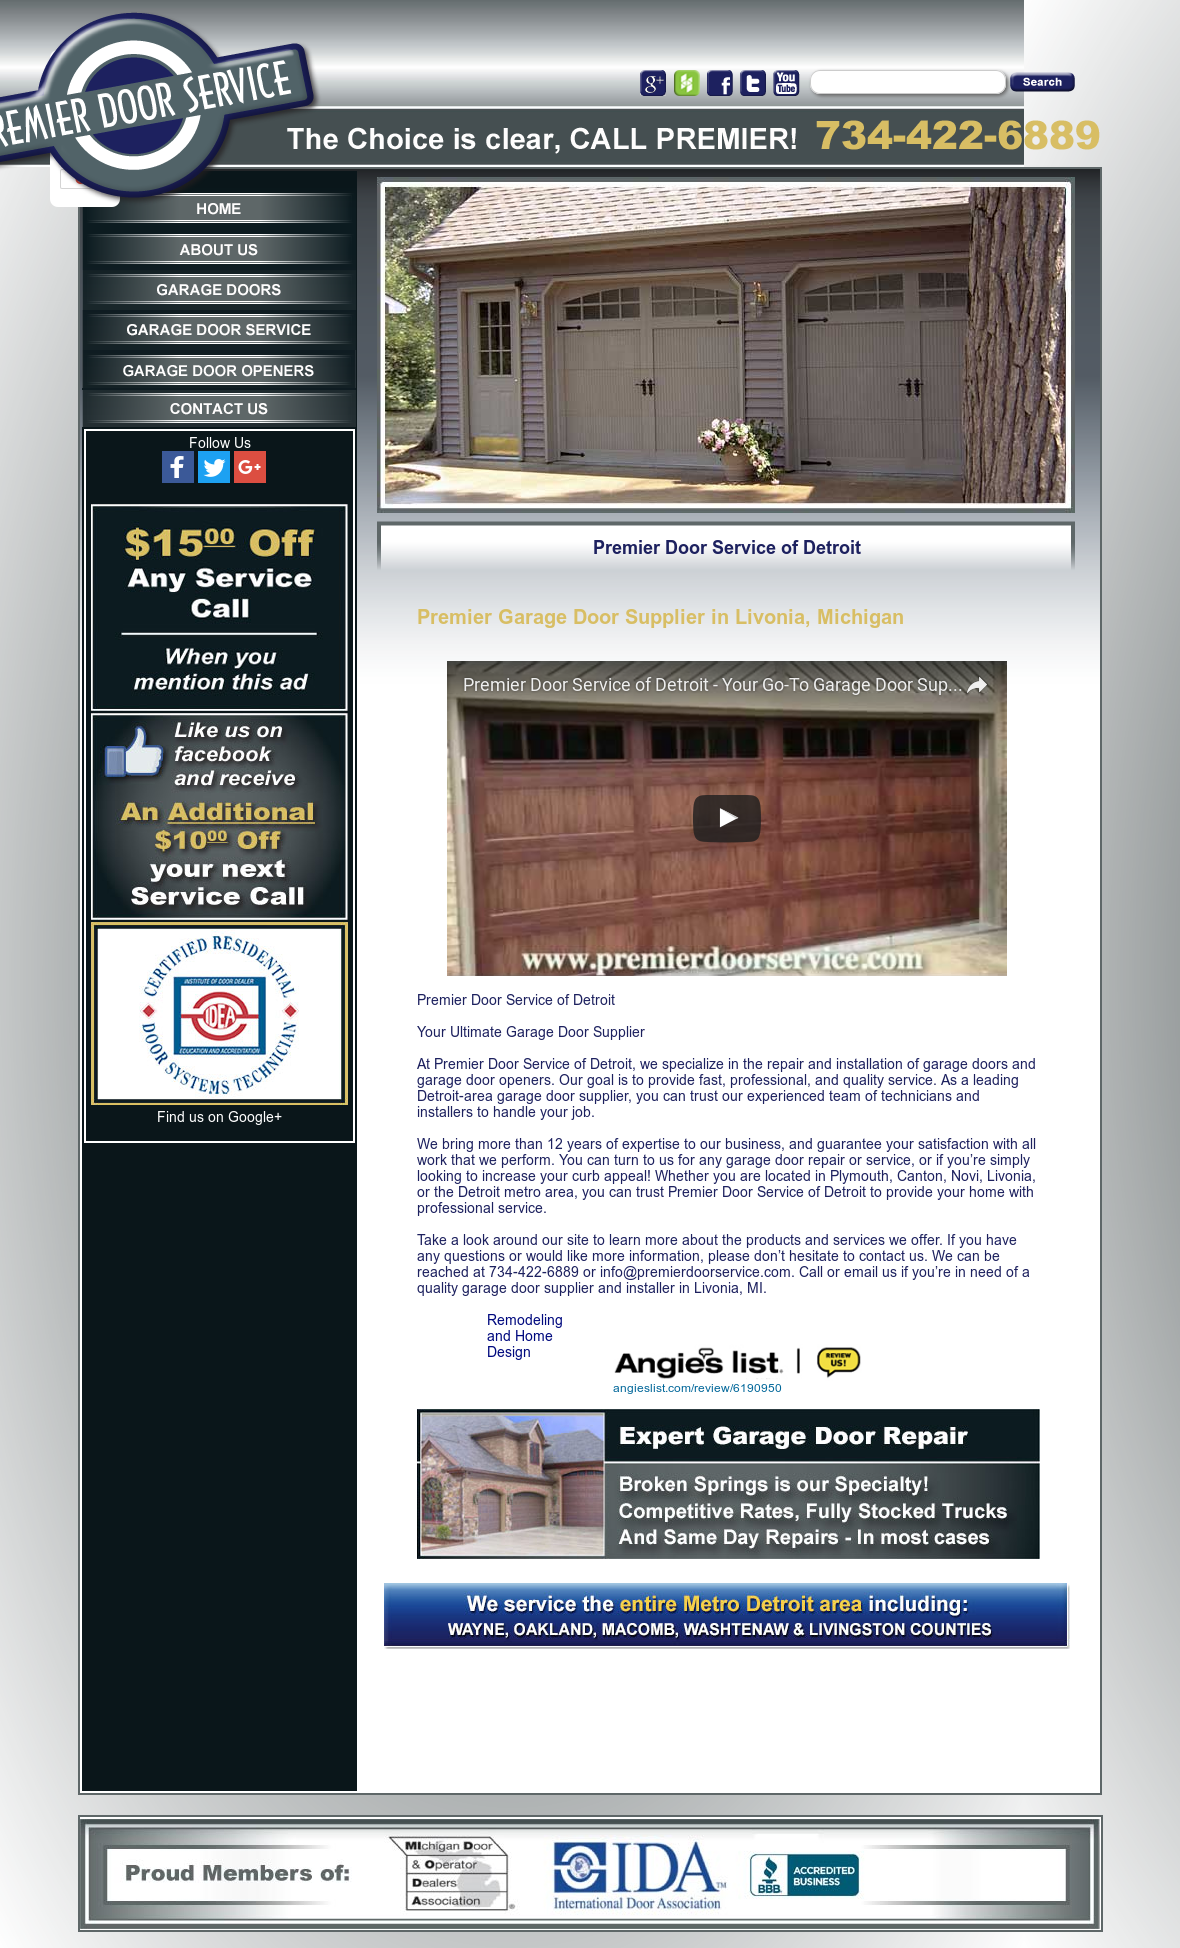 Lovely Premier Door Service Website History